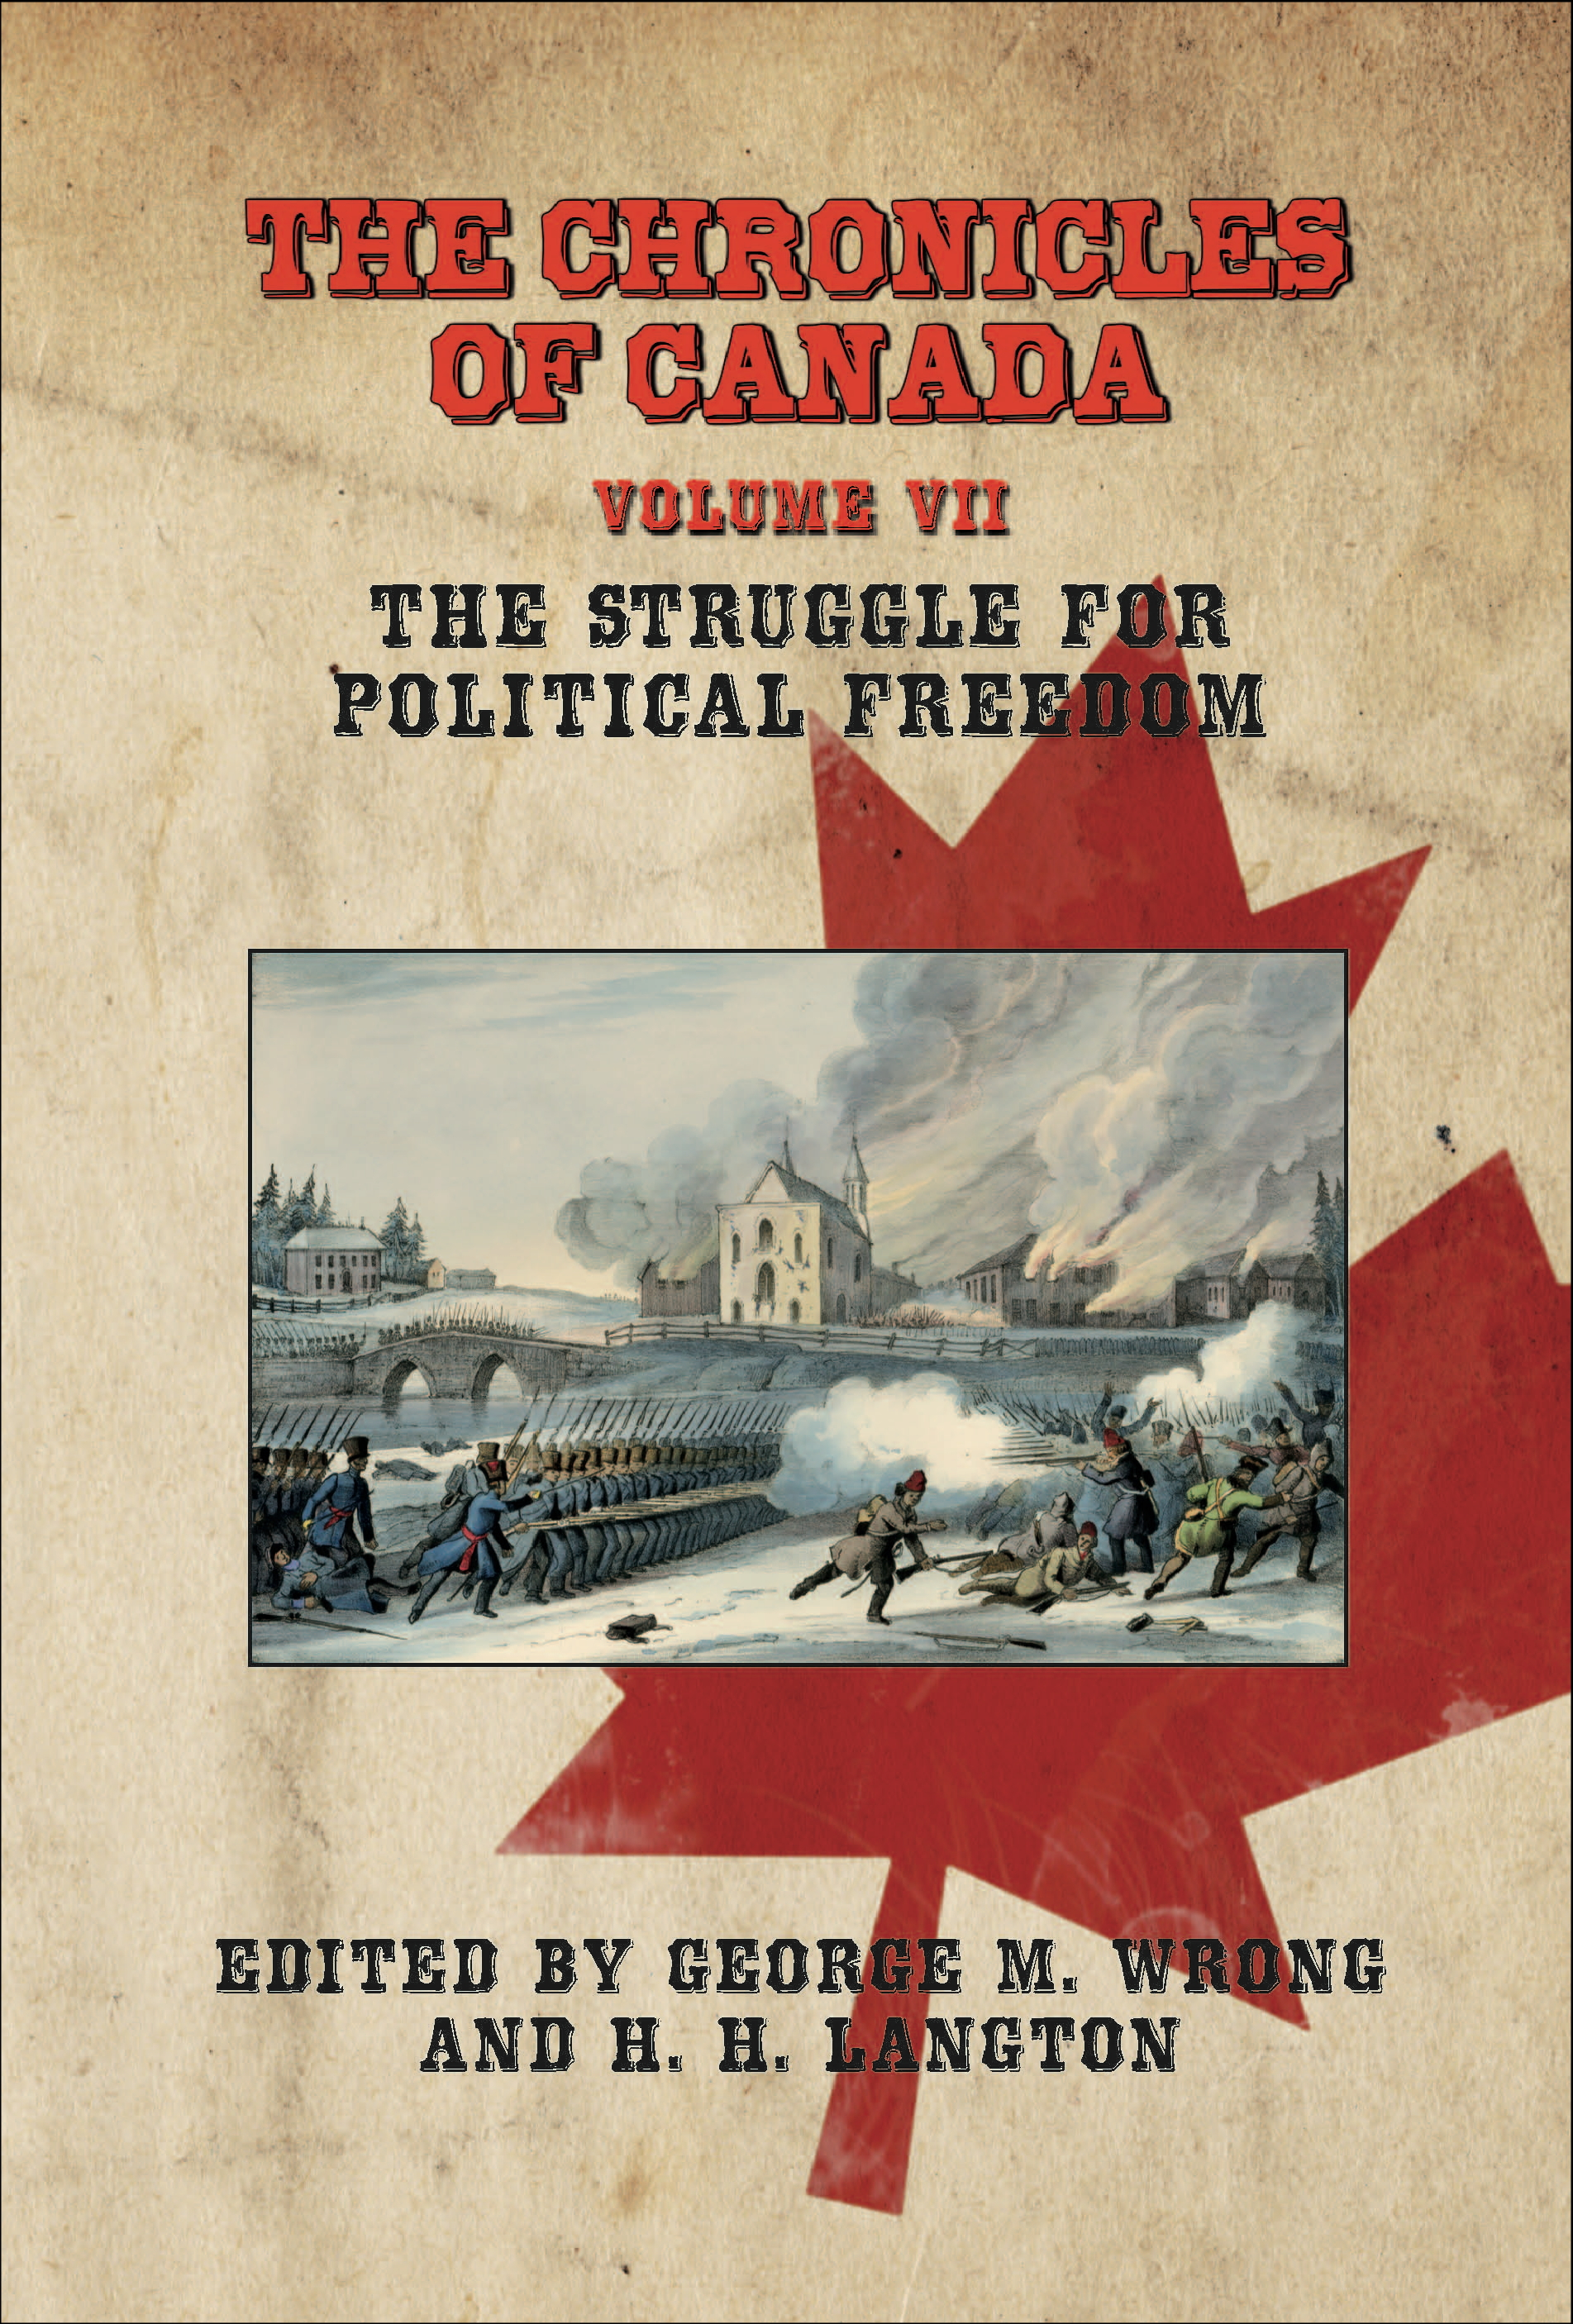 THE CHRONICLES OF CANADA: Volume VII - The Struggle for Political Freedom By: George M. Wrong and H. H. Langton